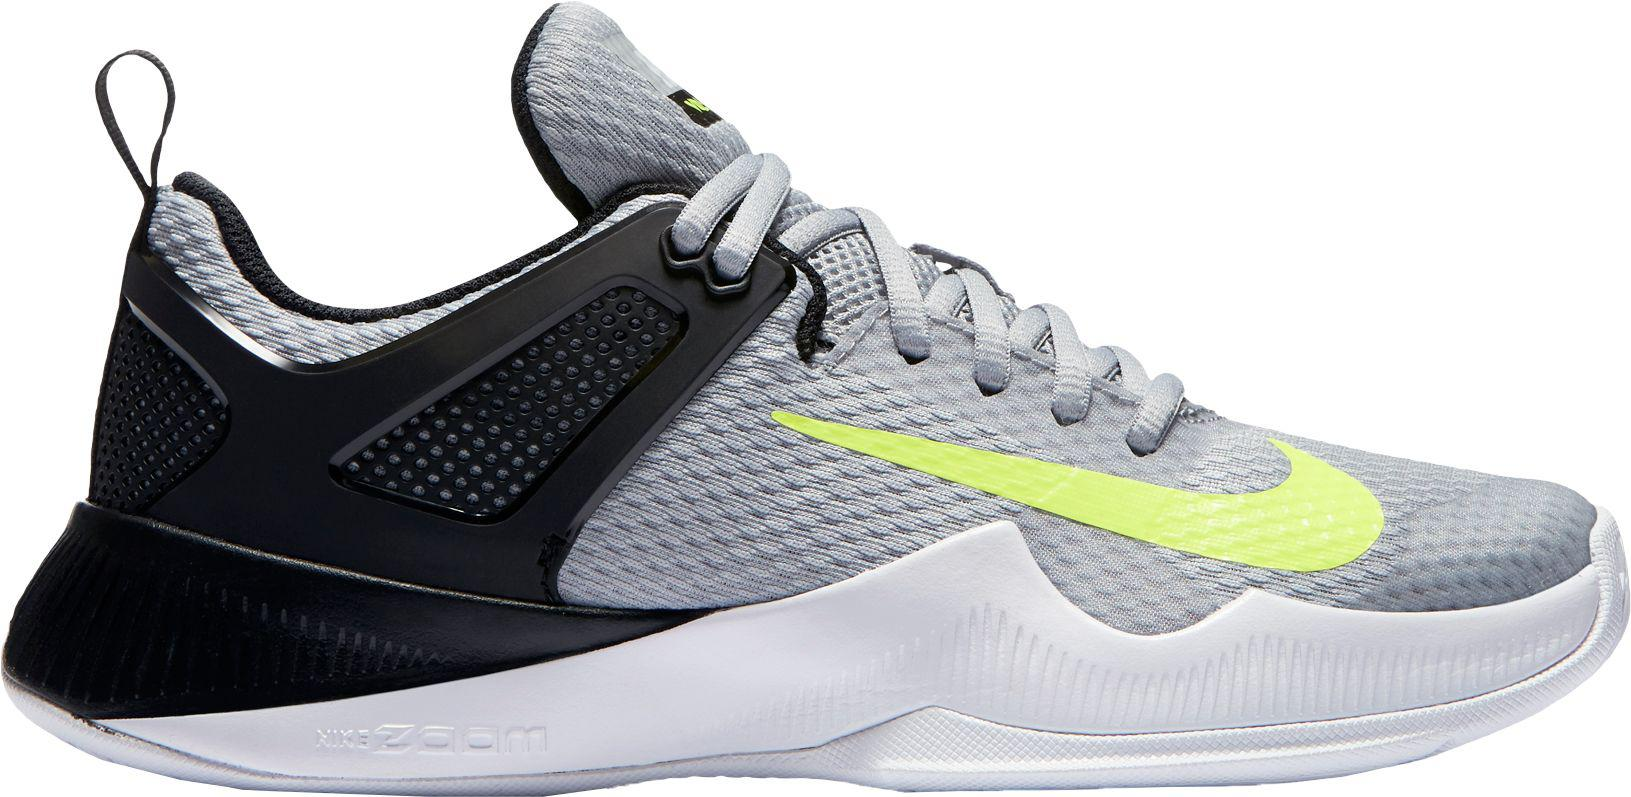 Nike - Gray Air Zoom Hyperace Volleyball Shoes for Men - Lyst